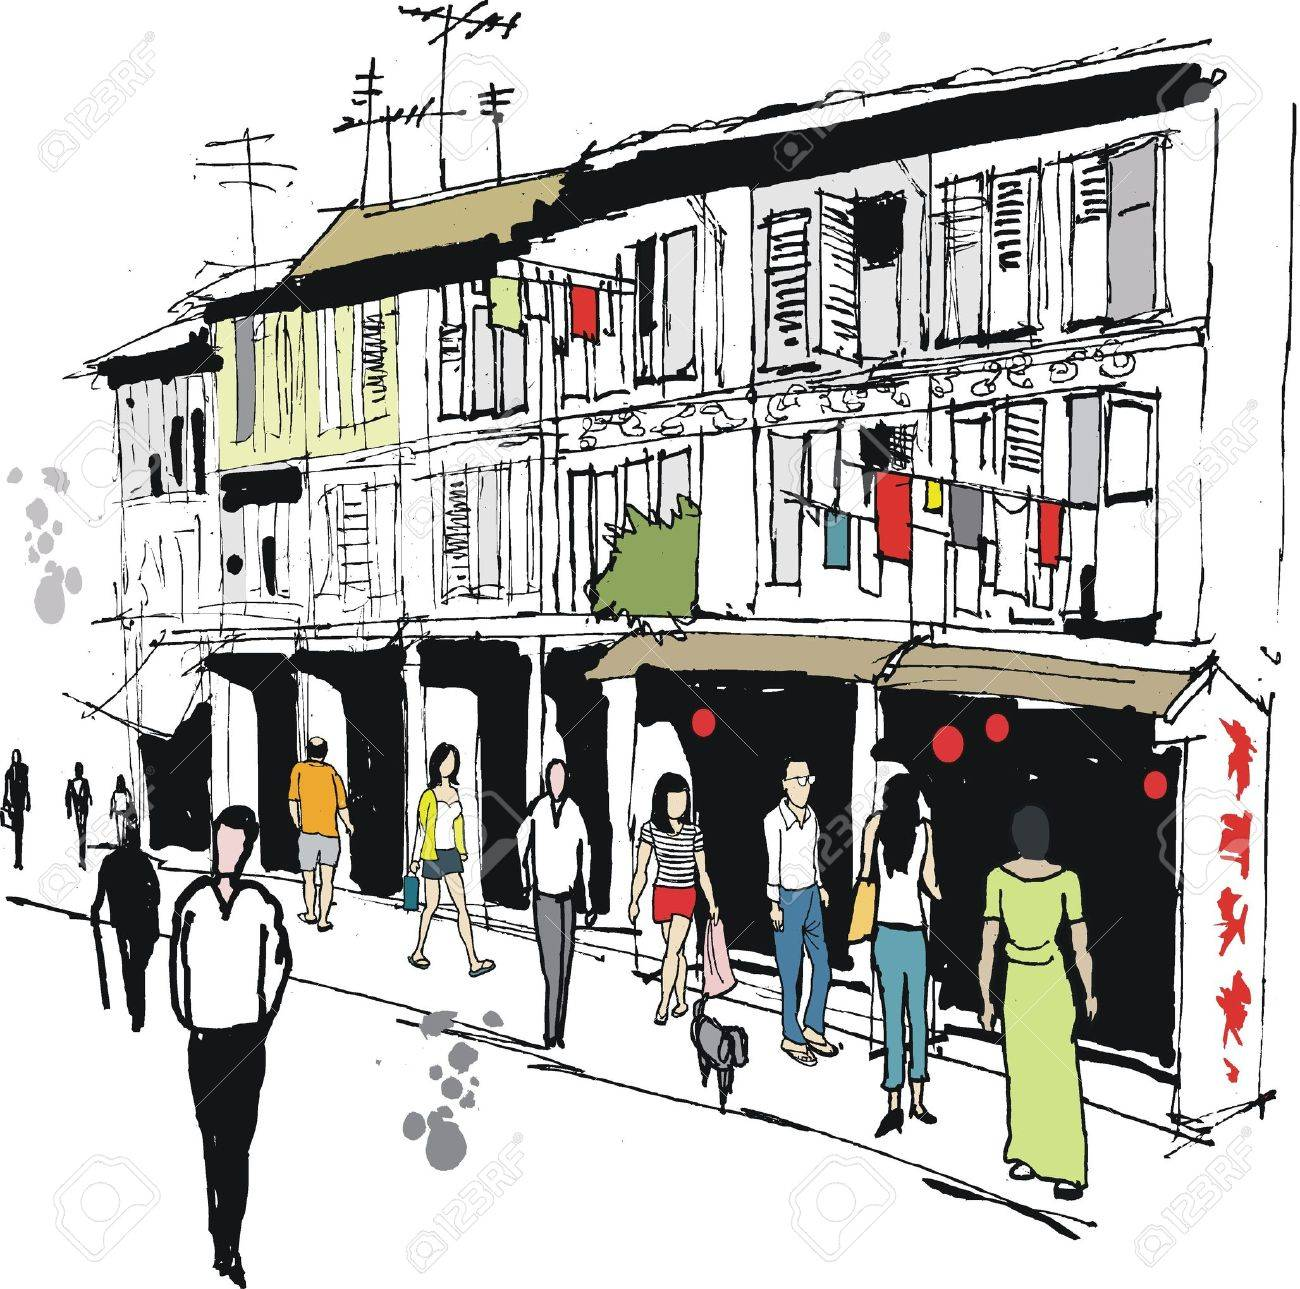 Vector illustration of old Chinatown area, Singapore Stock Vector - 12483926